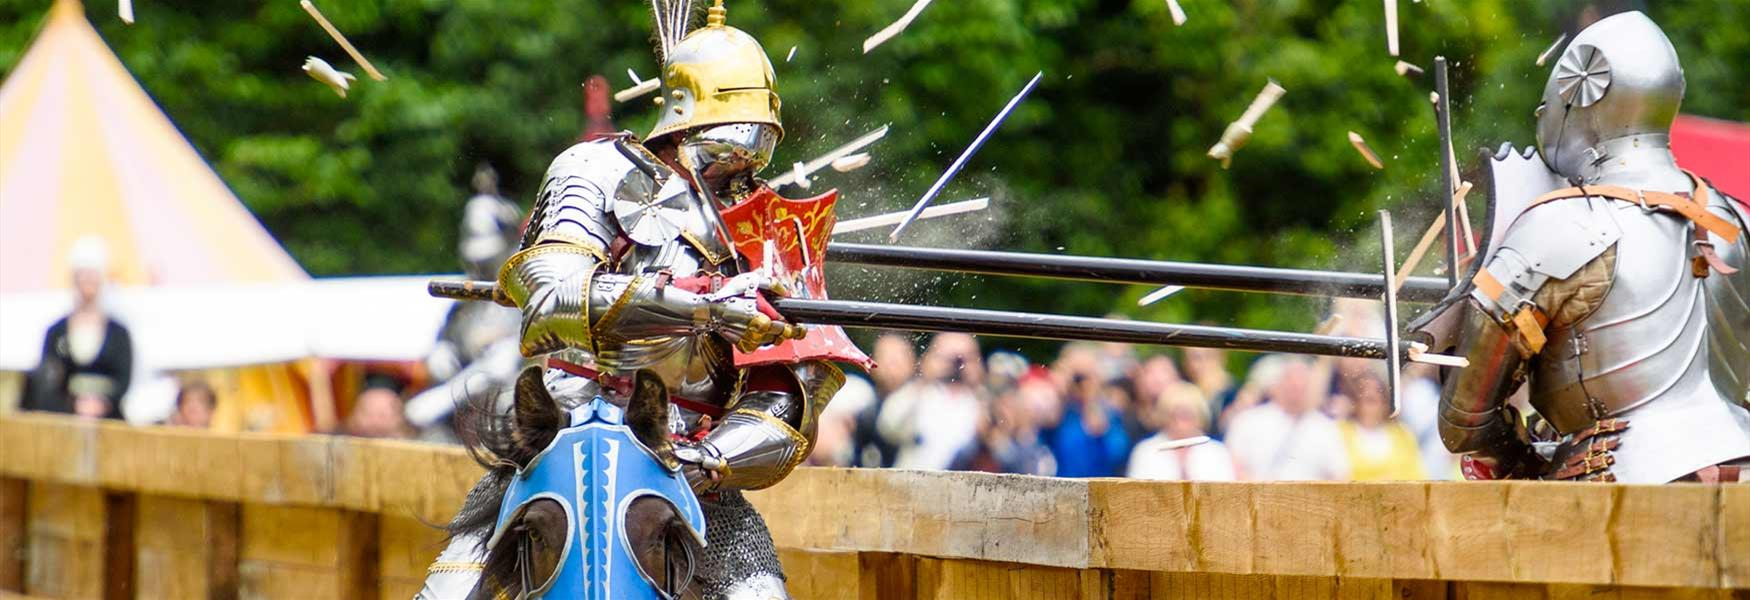 Knights Jousting